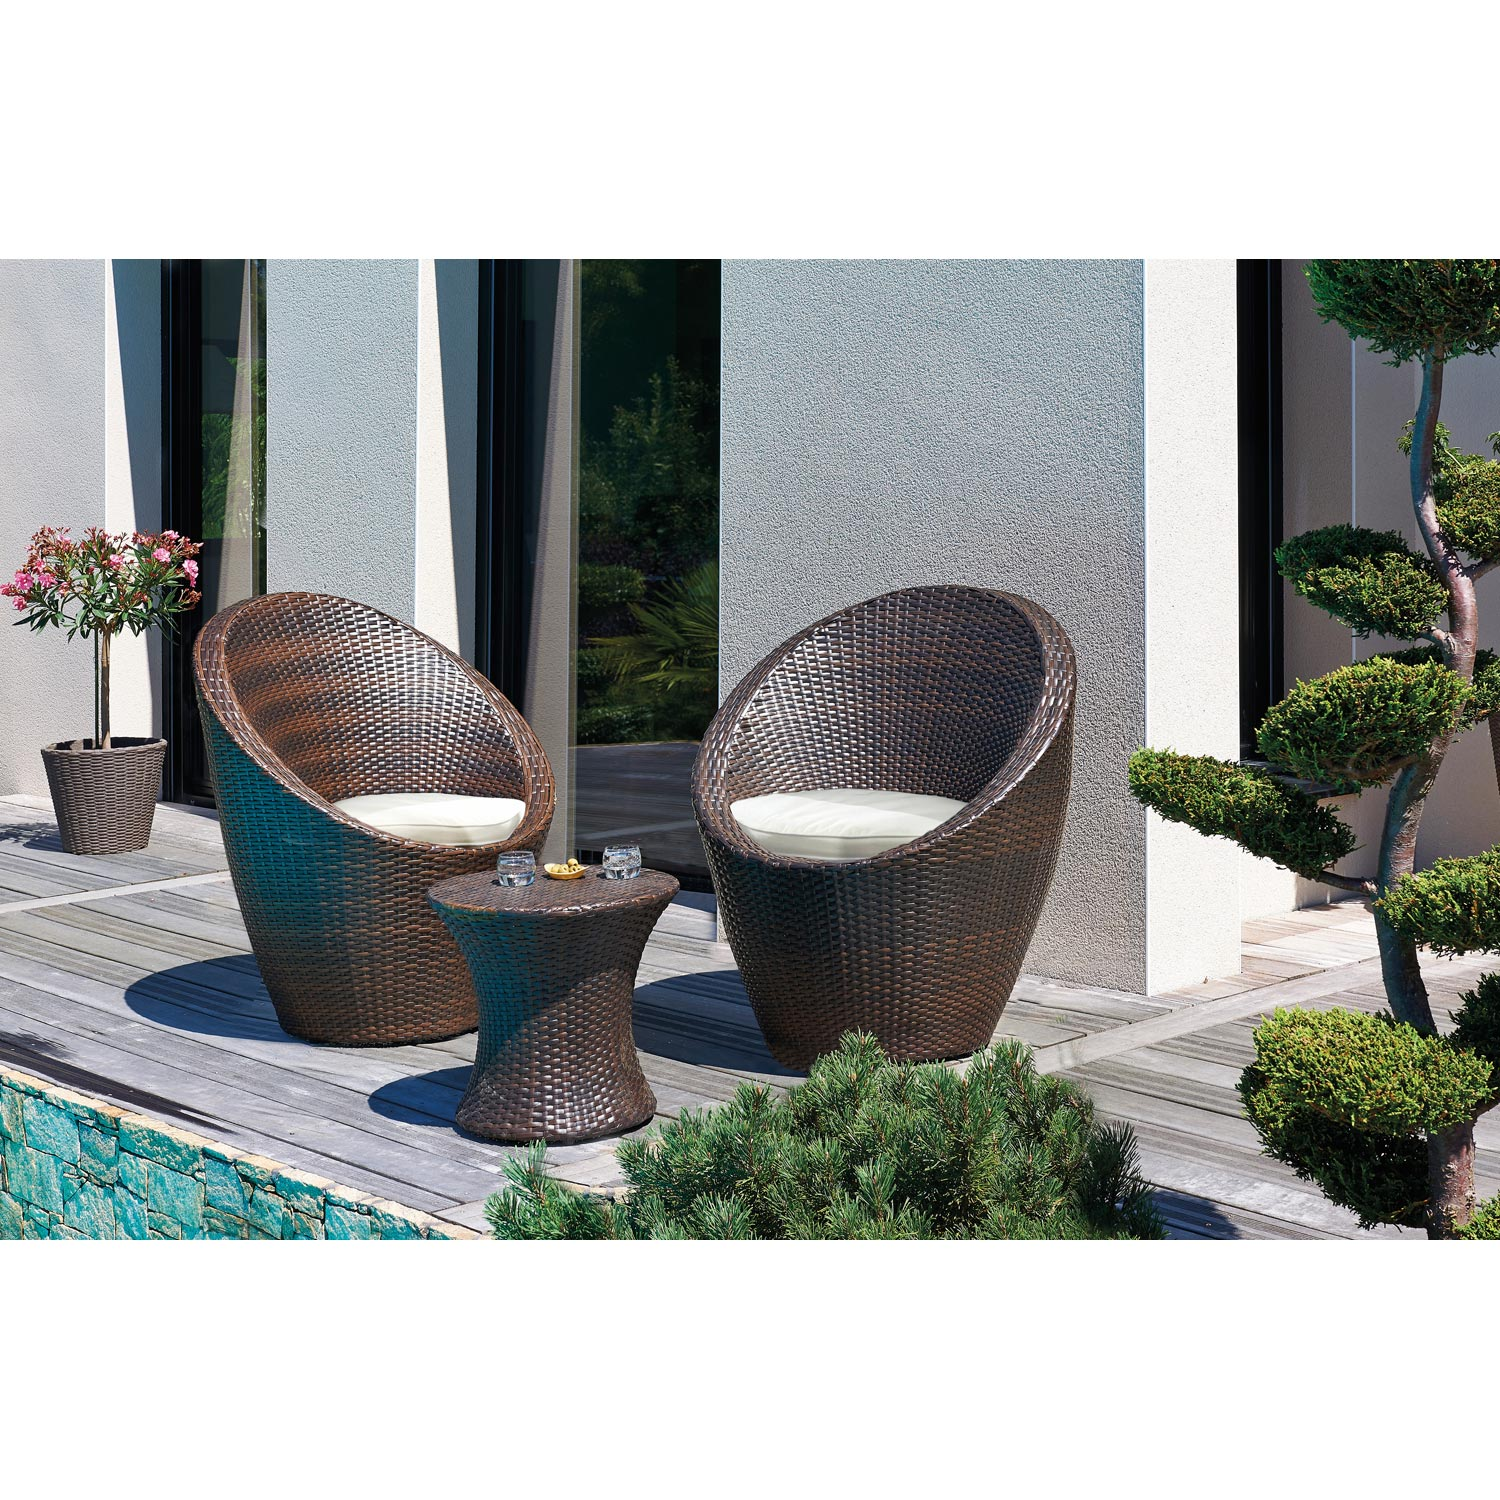 Salon bas de jardin totem r sine tress e chocolat 1 table - Salons de jardin leroy merlin ...